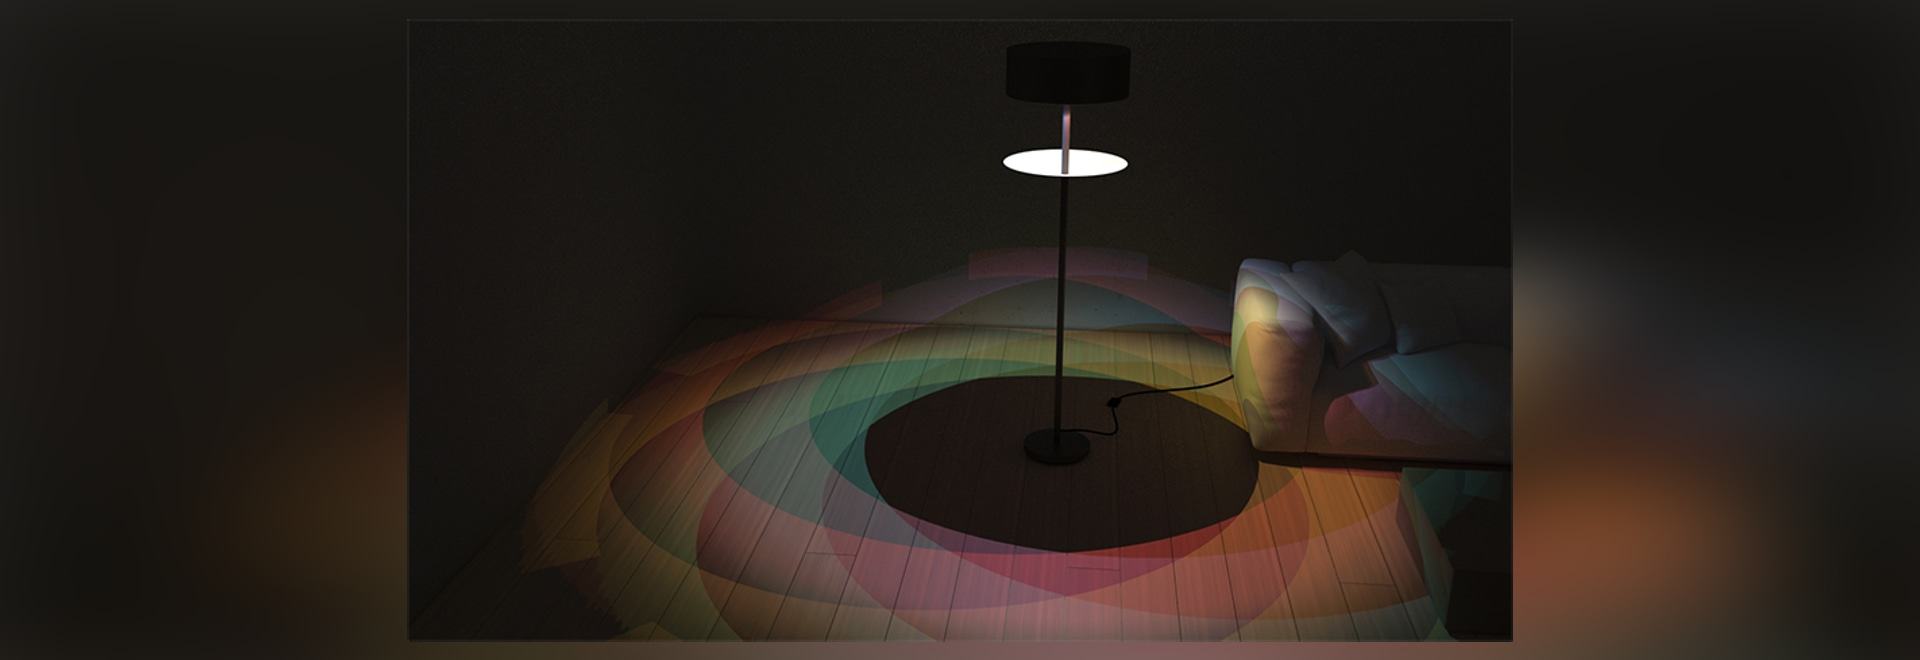 eclipse of rainbow lamp lets you see the natural phenomenon every day